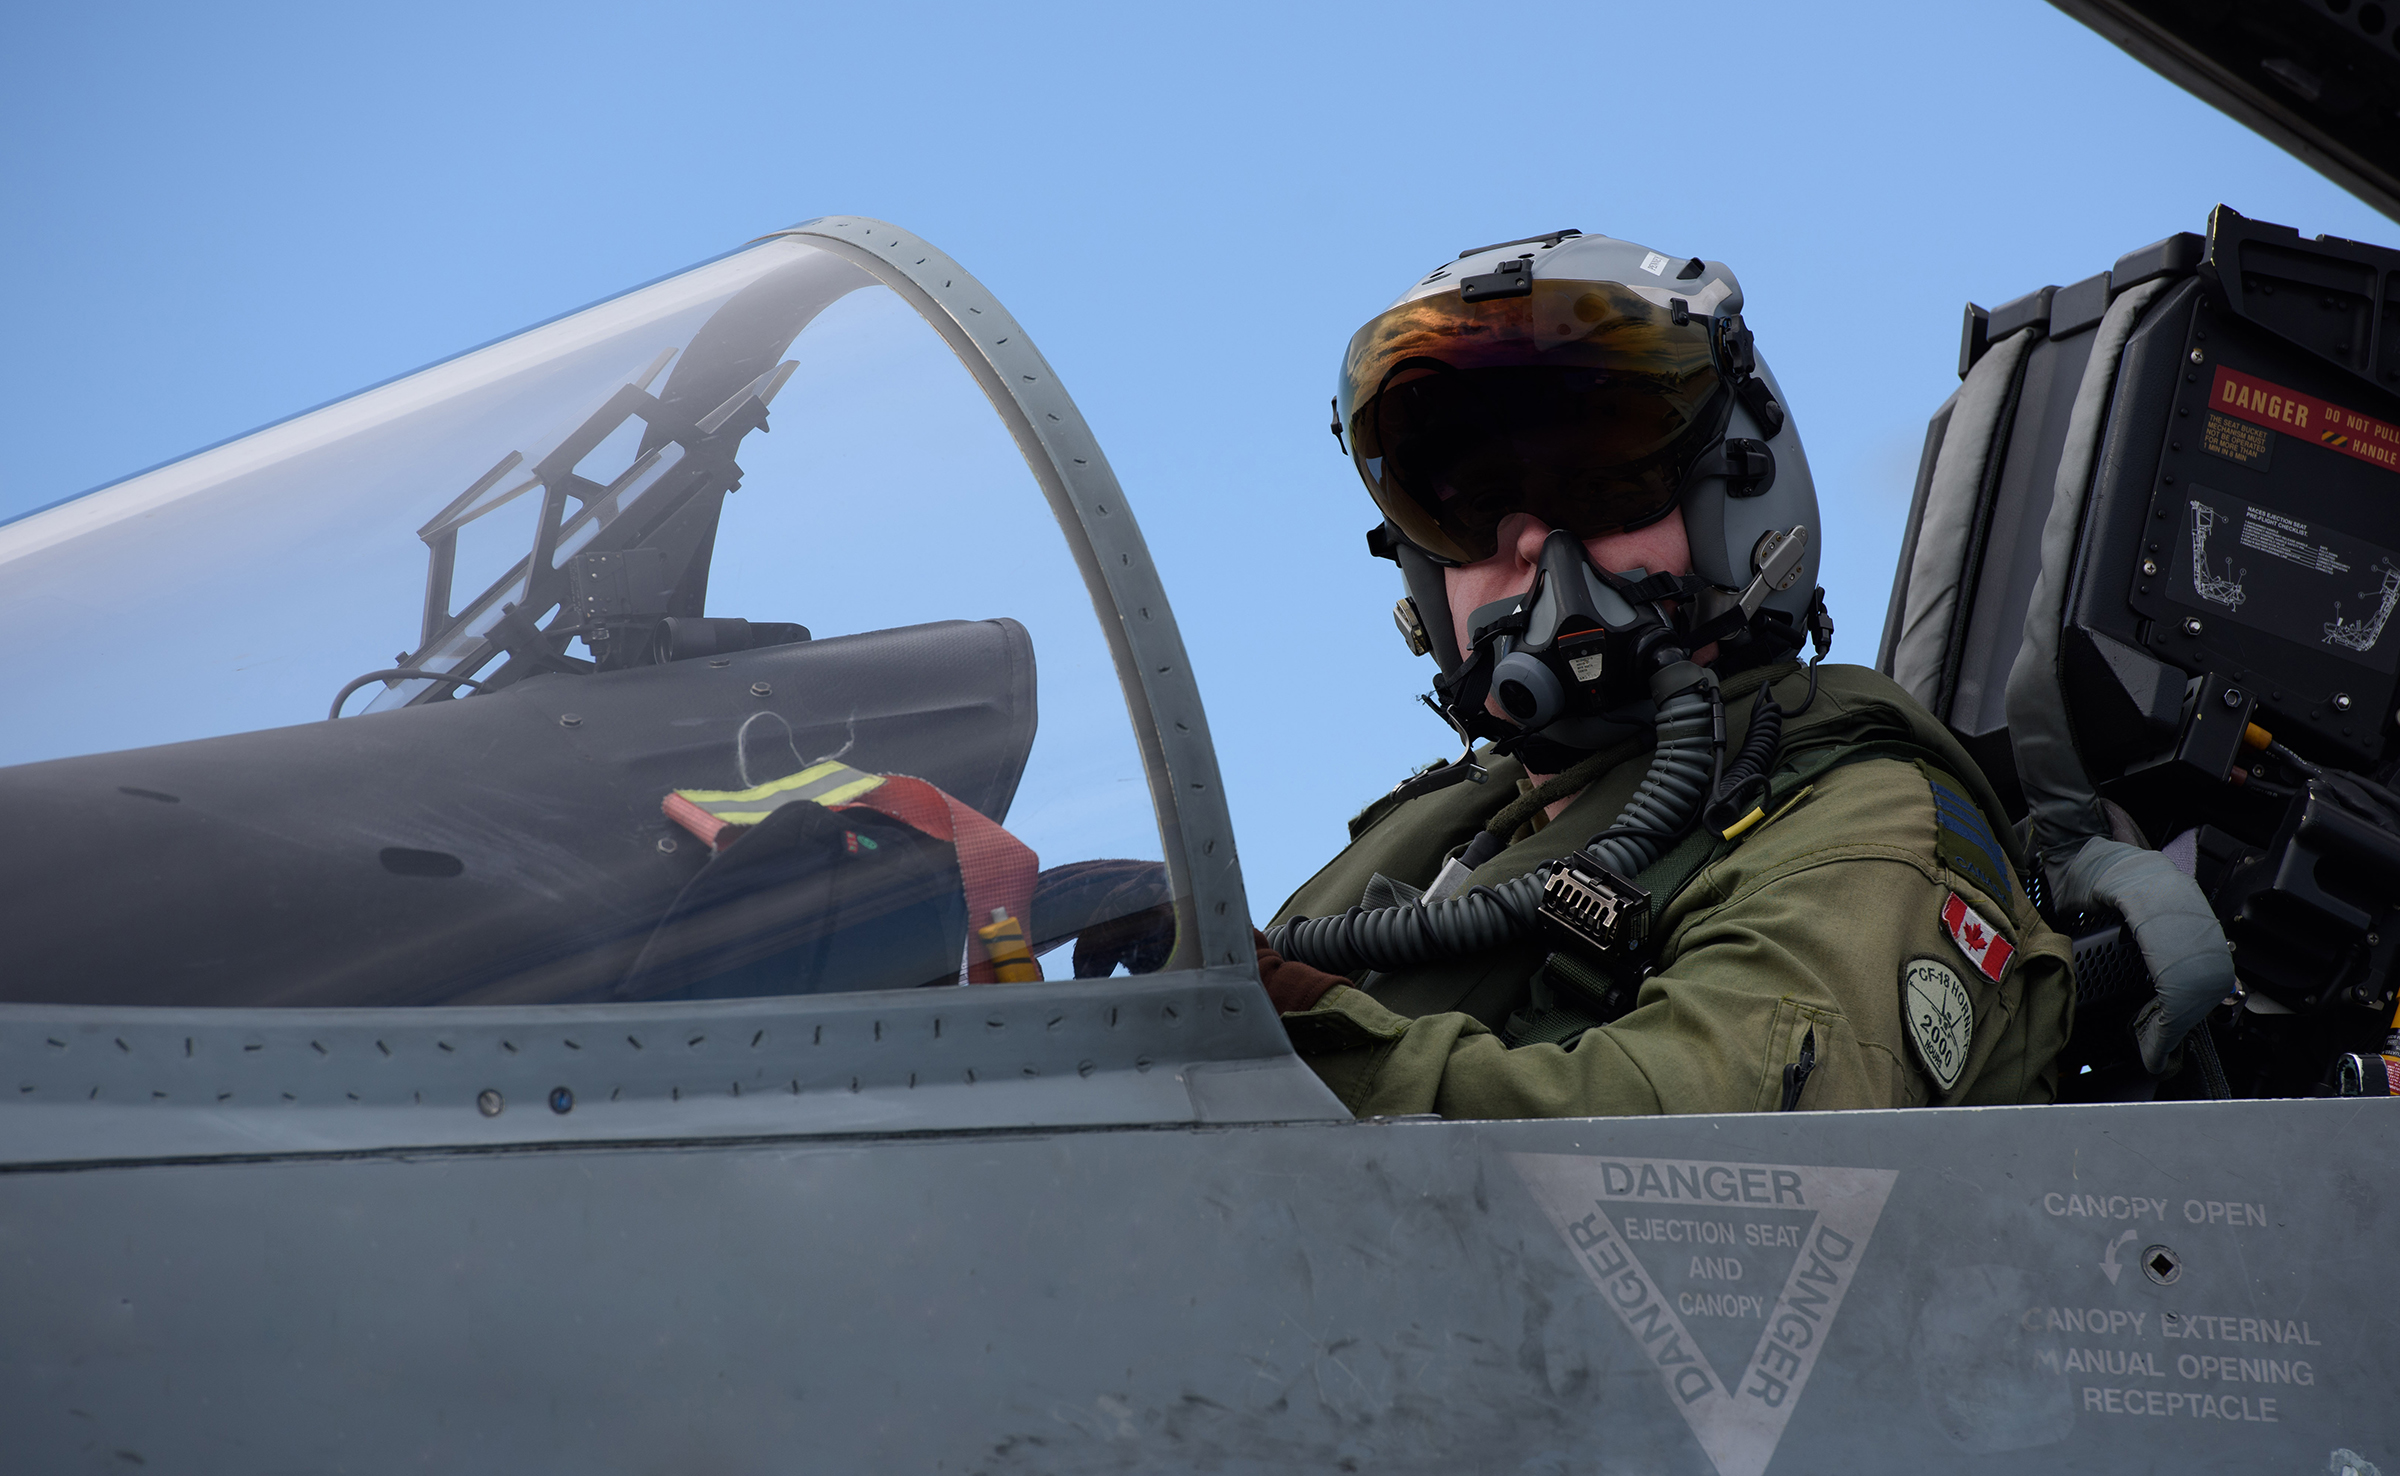 A person wearing a helmet with a visor and oxygen mask covering his face sits in the cockpit of a fighter aircraft with the canopy open.